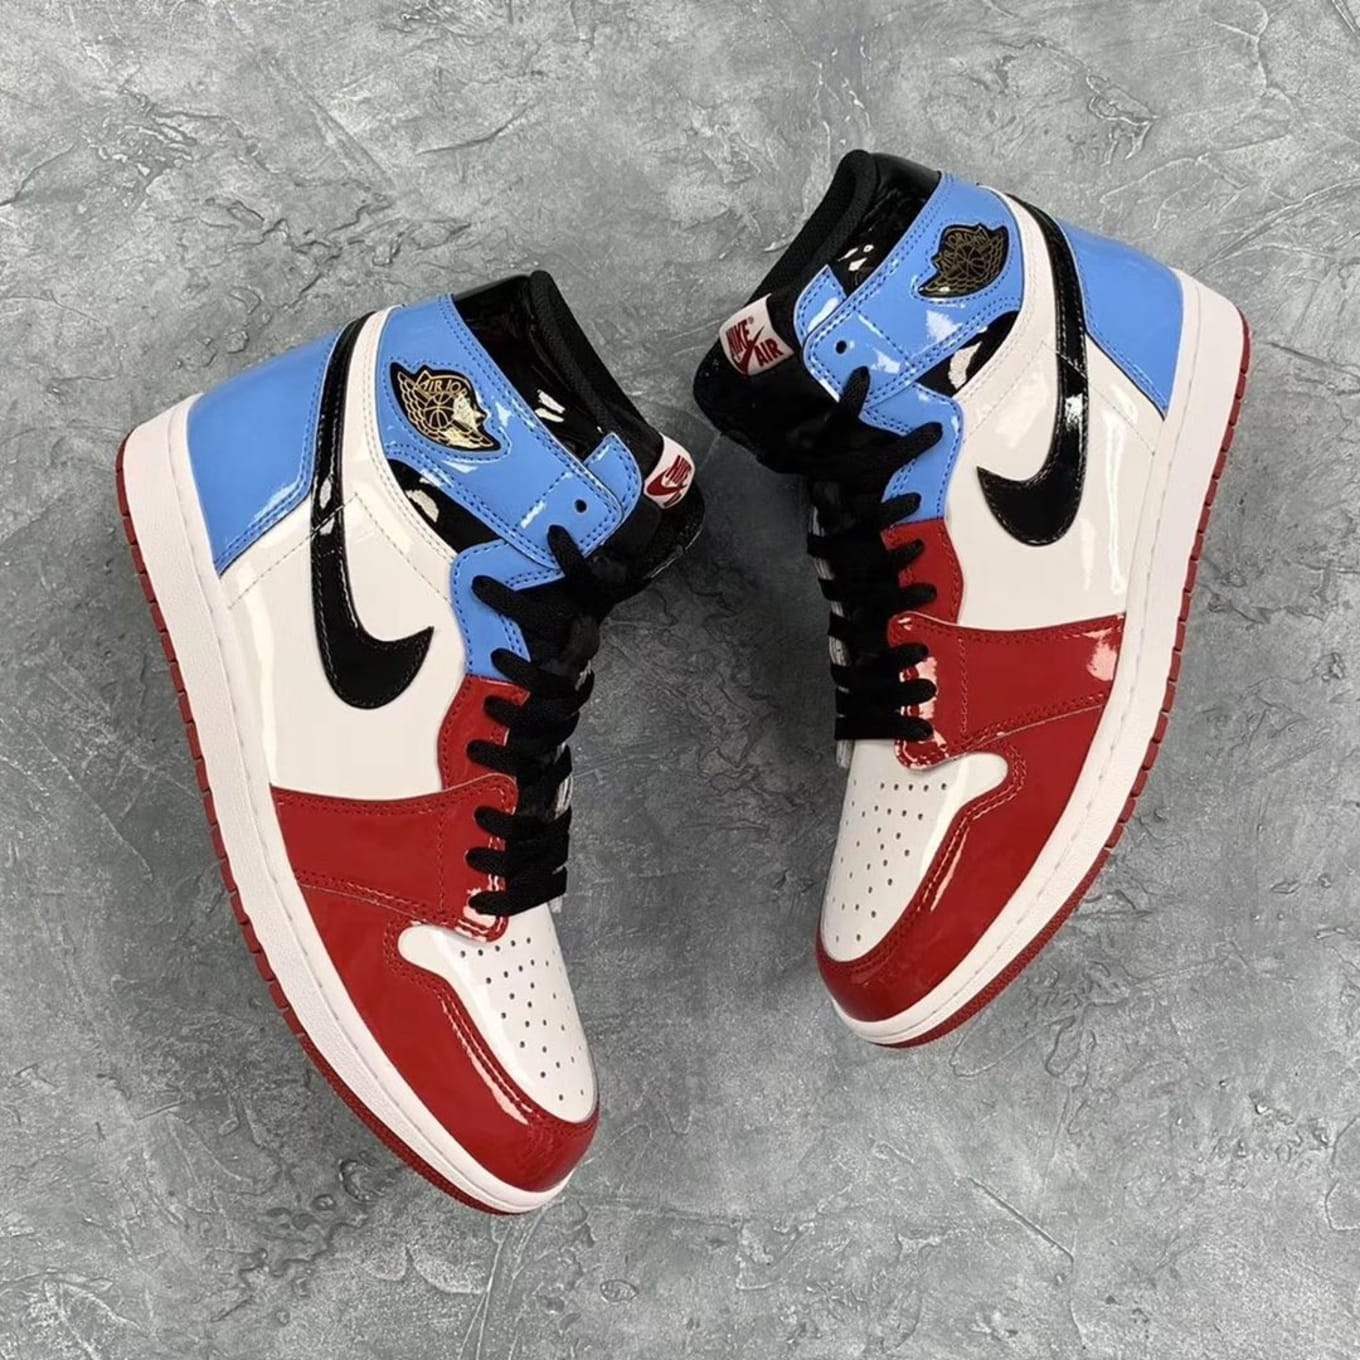 buy online 369a2 ab99b Air Jordan 1 UNC to Chicago Release Date | Sole Collector